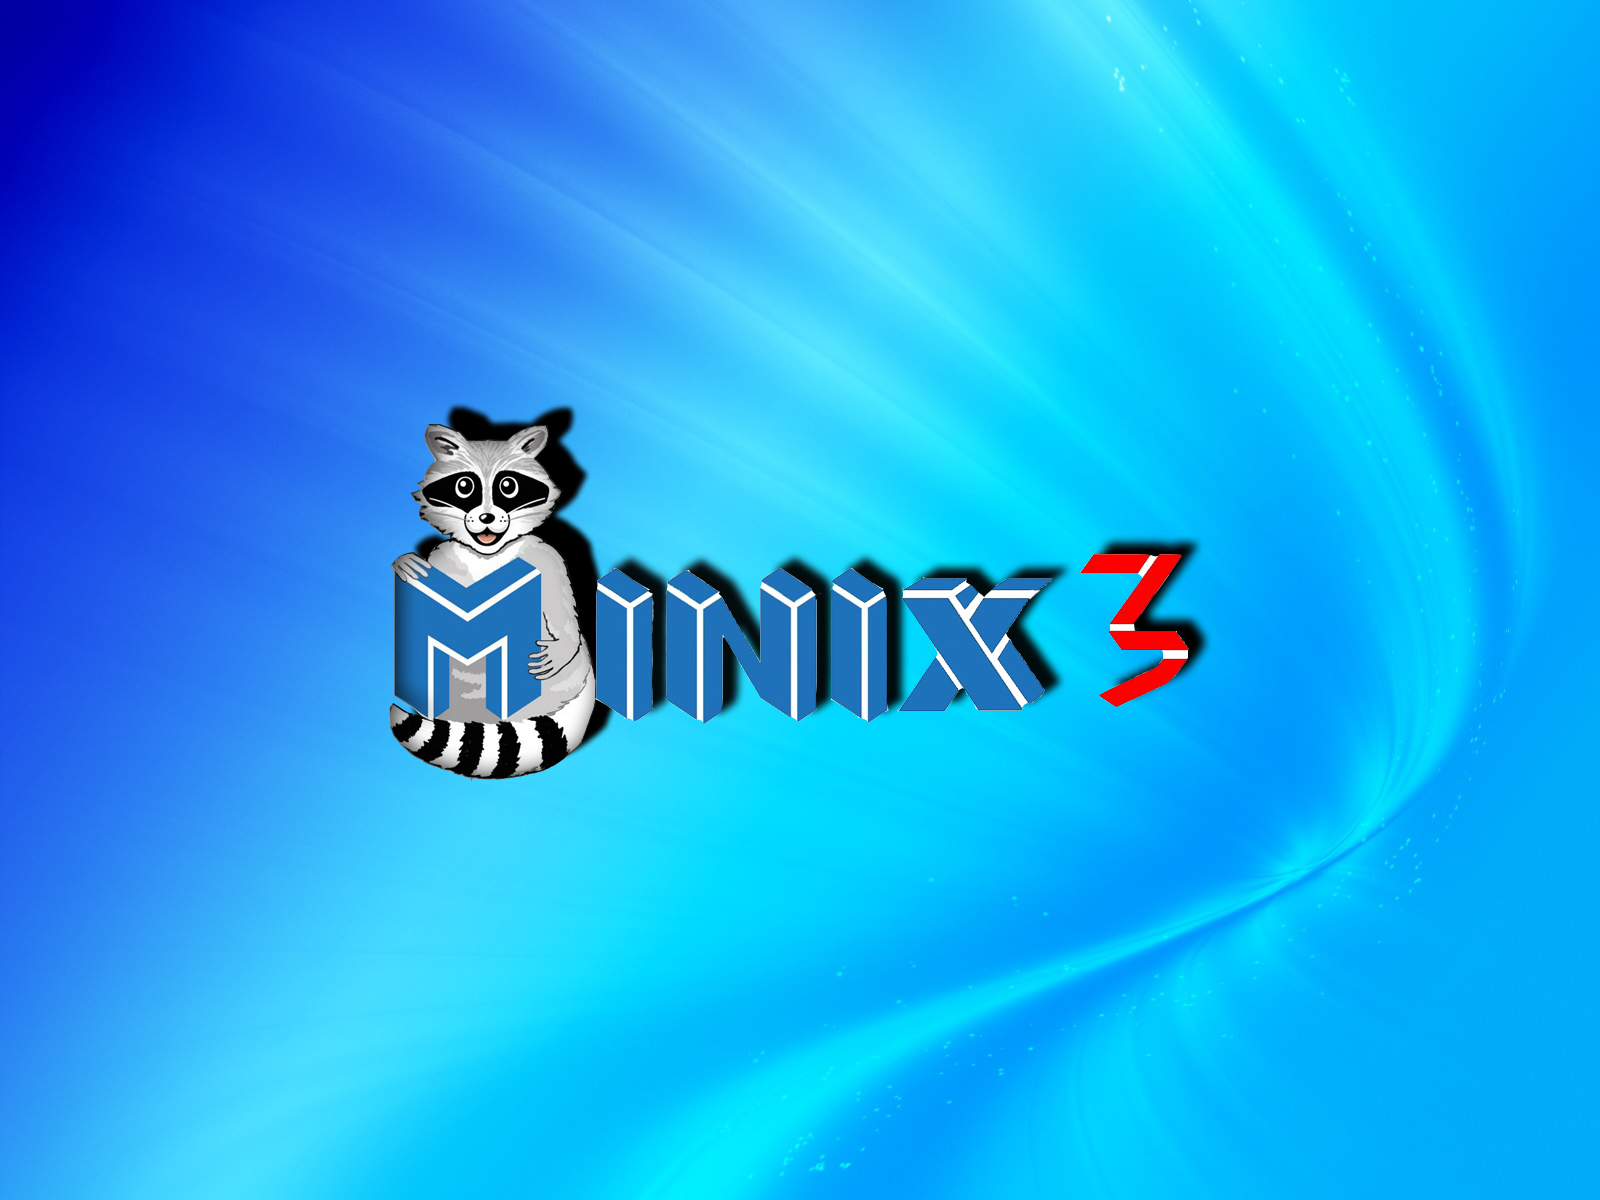 www:wallpapers:minix3_1.jpg